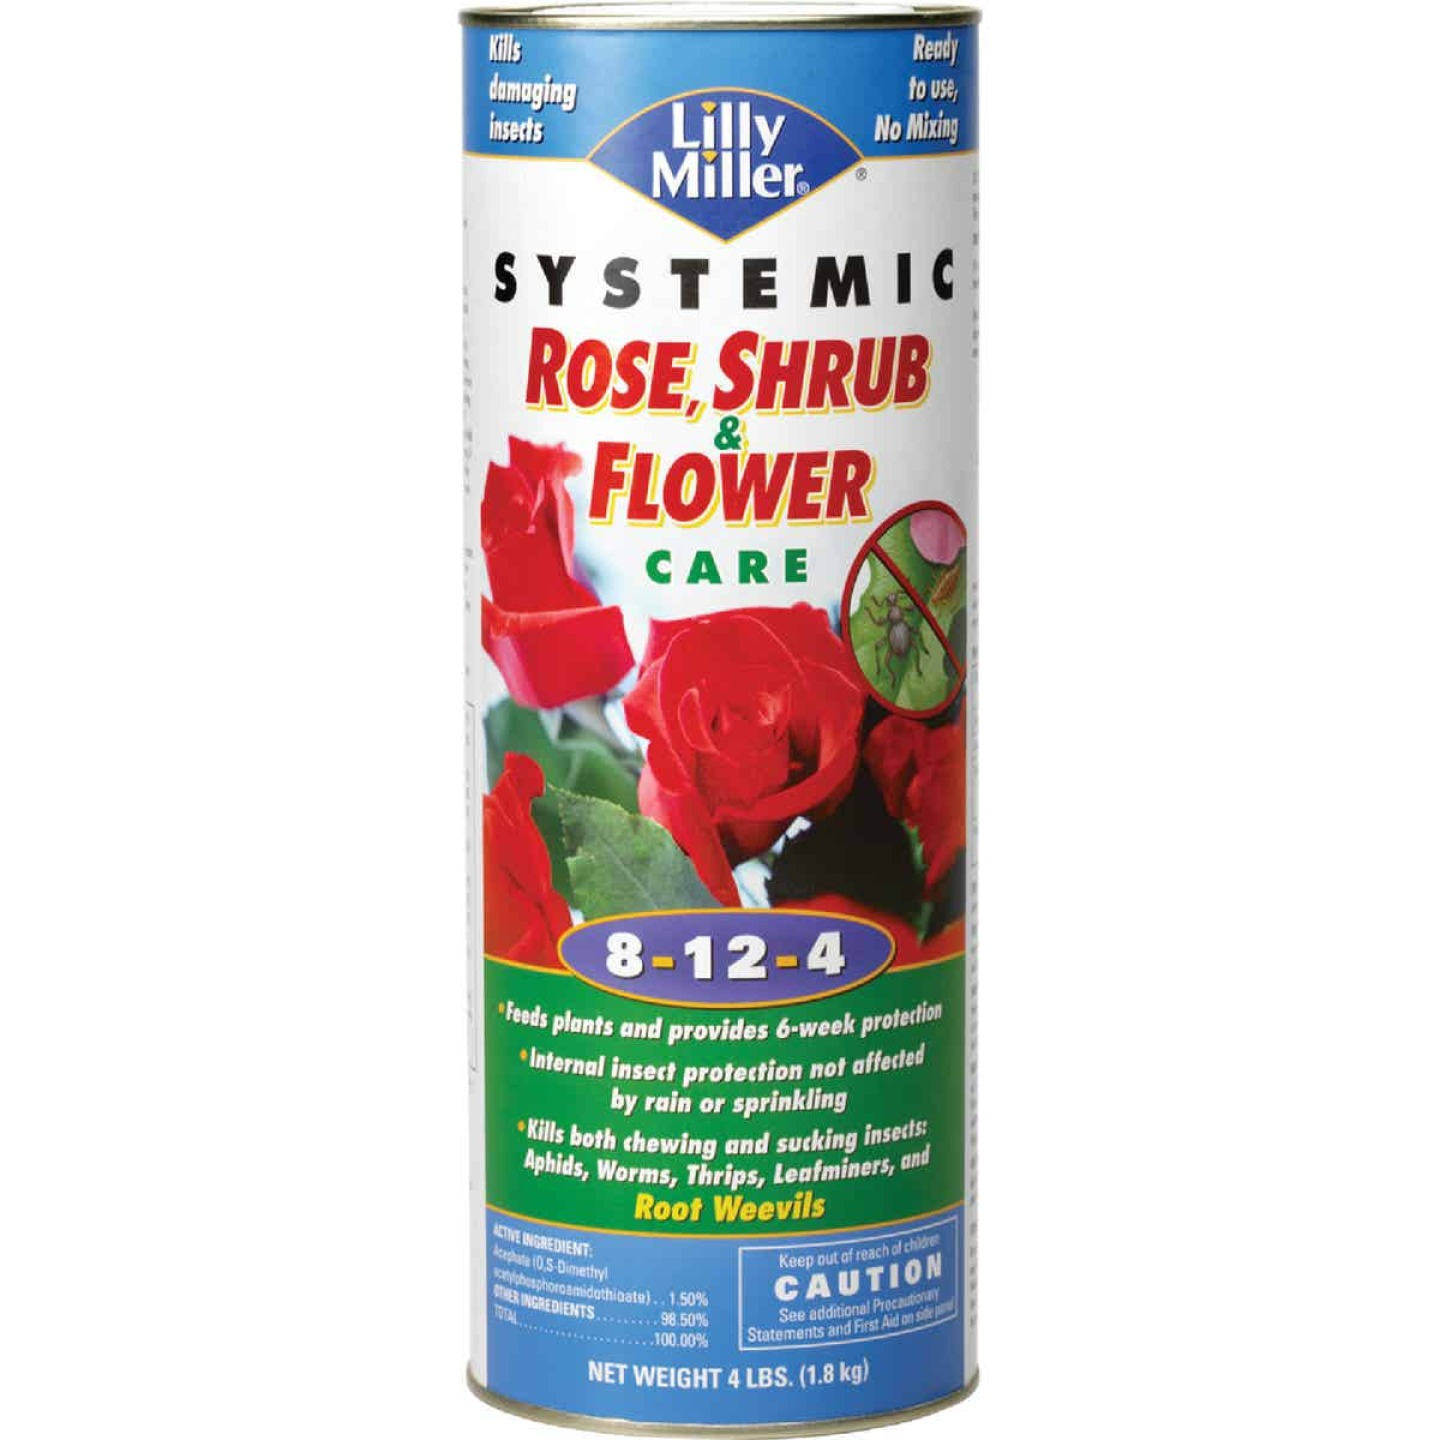 Lilly Miller 4 Lb. 8-12-4 Systemic Rose & Flower Care Dry Plant Food Image 1